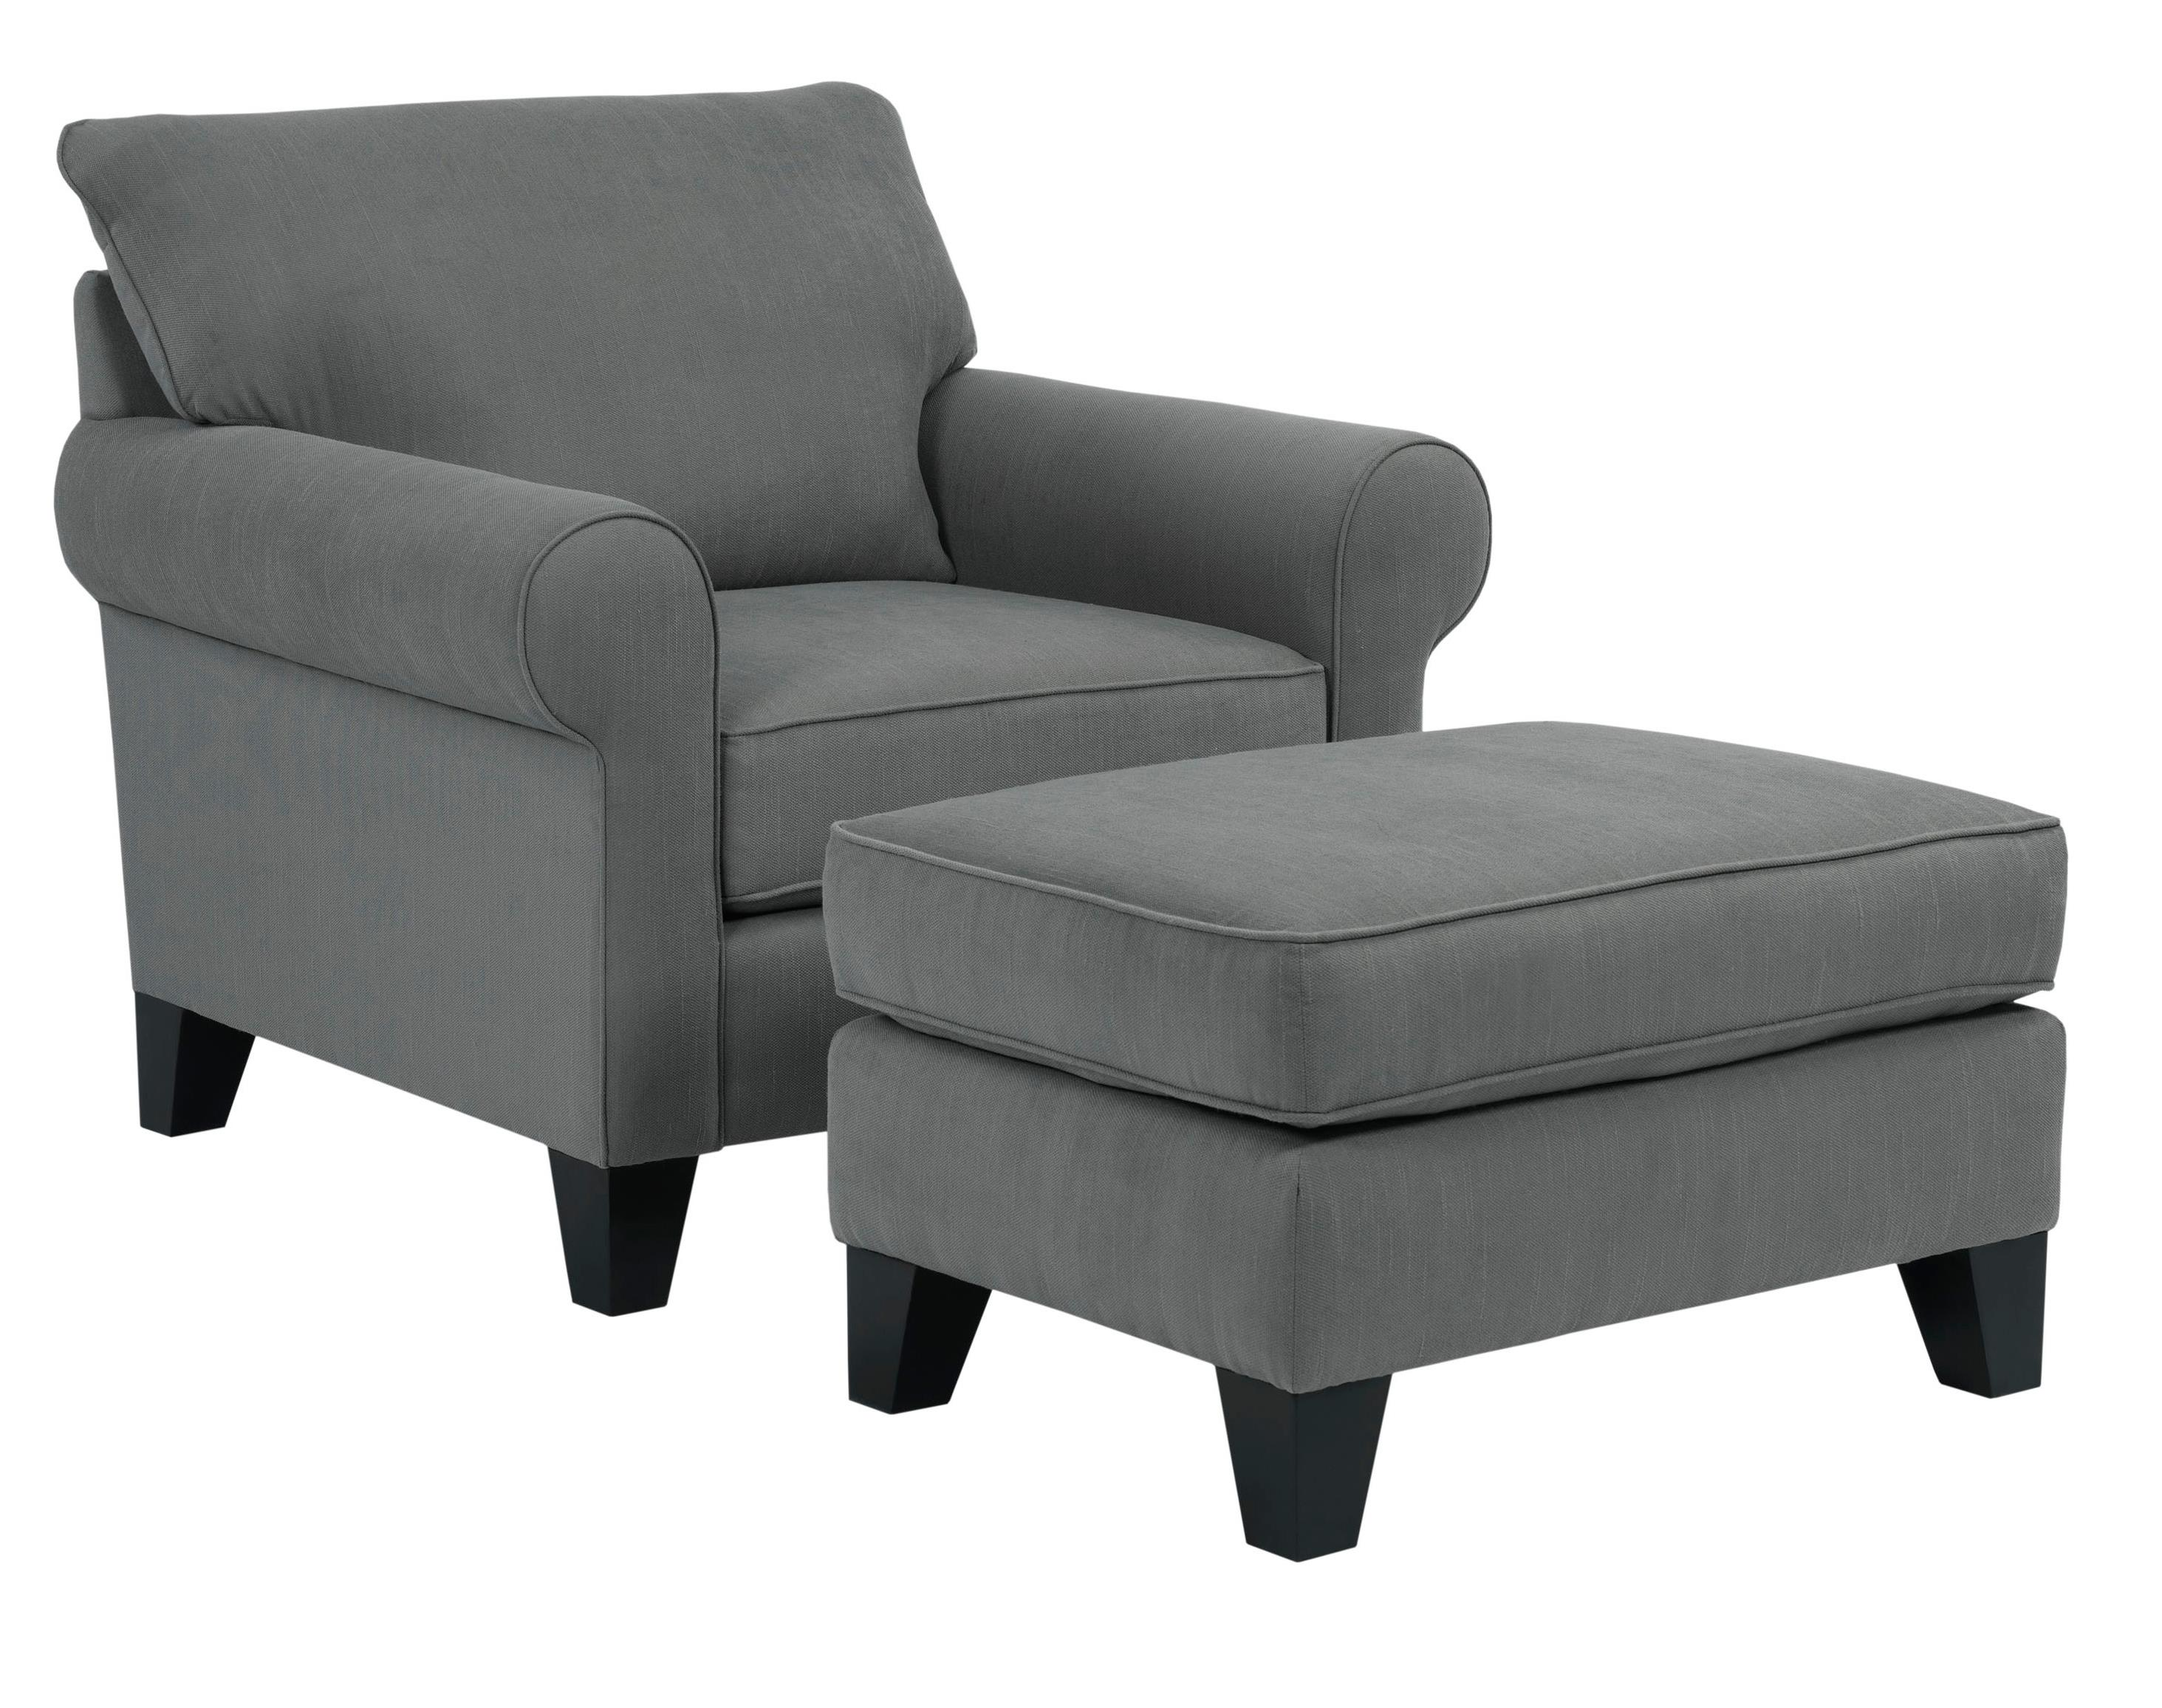 Broyhill Furniture Noda Transitional Chair and Ottoman Set - Item Number: 4230-0+5-4073-94